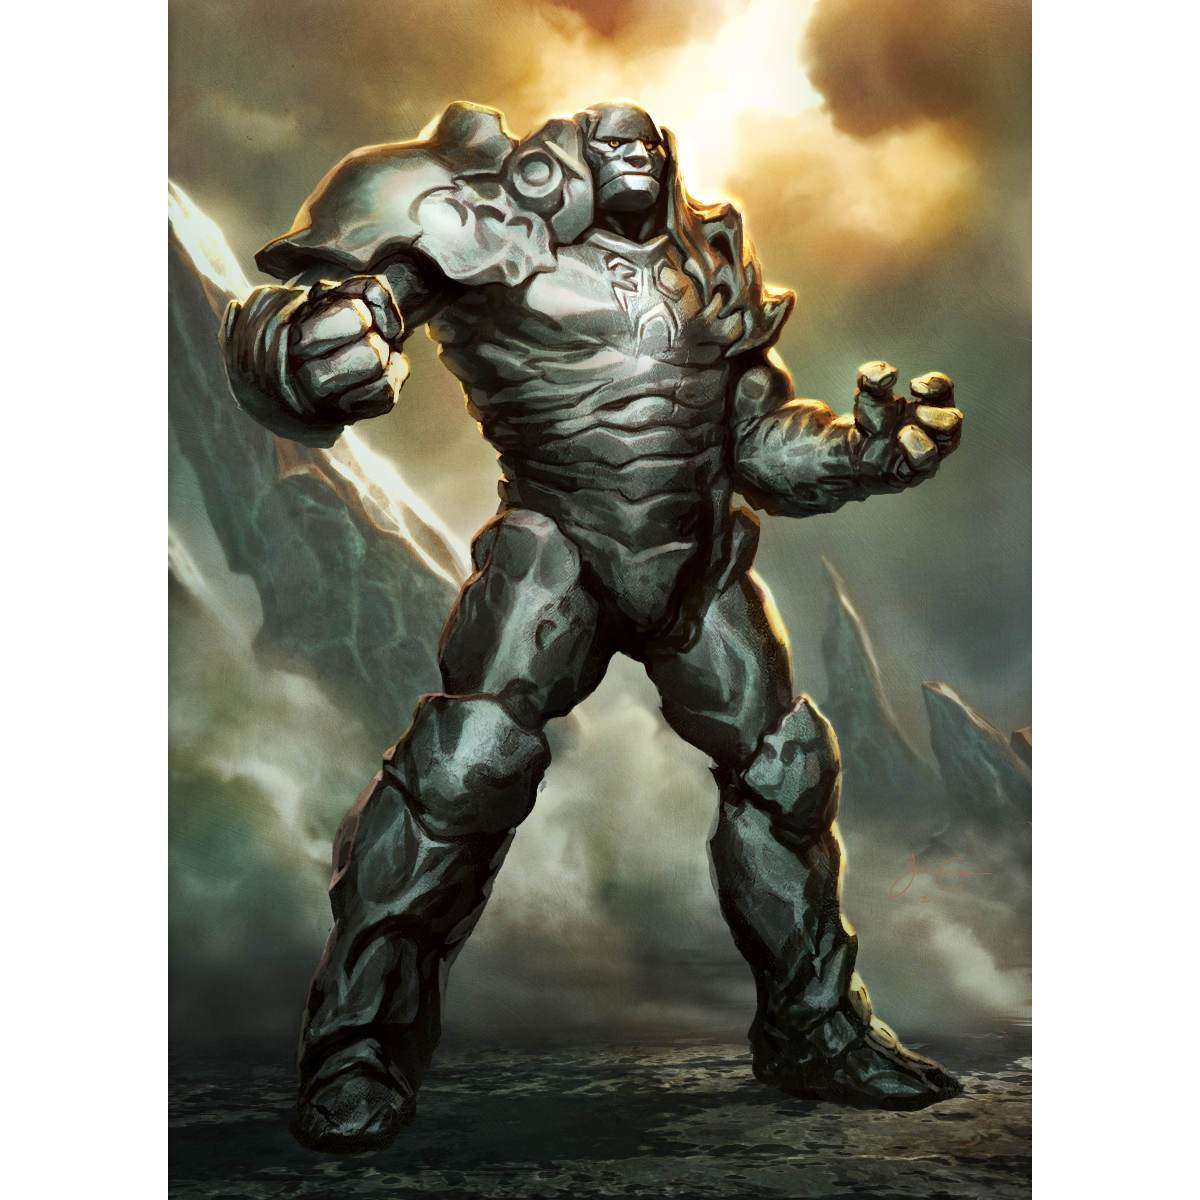 Karn Liberated Print - Print - Original Magic Art - Accessories for Magic the Gathering and other card games